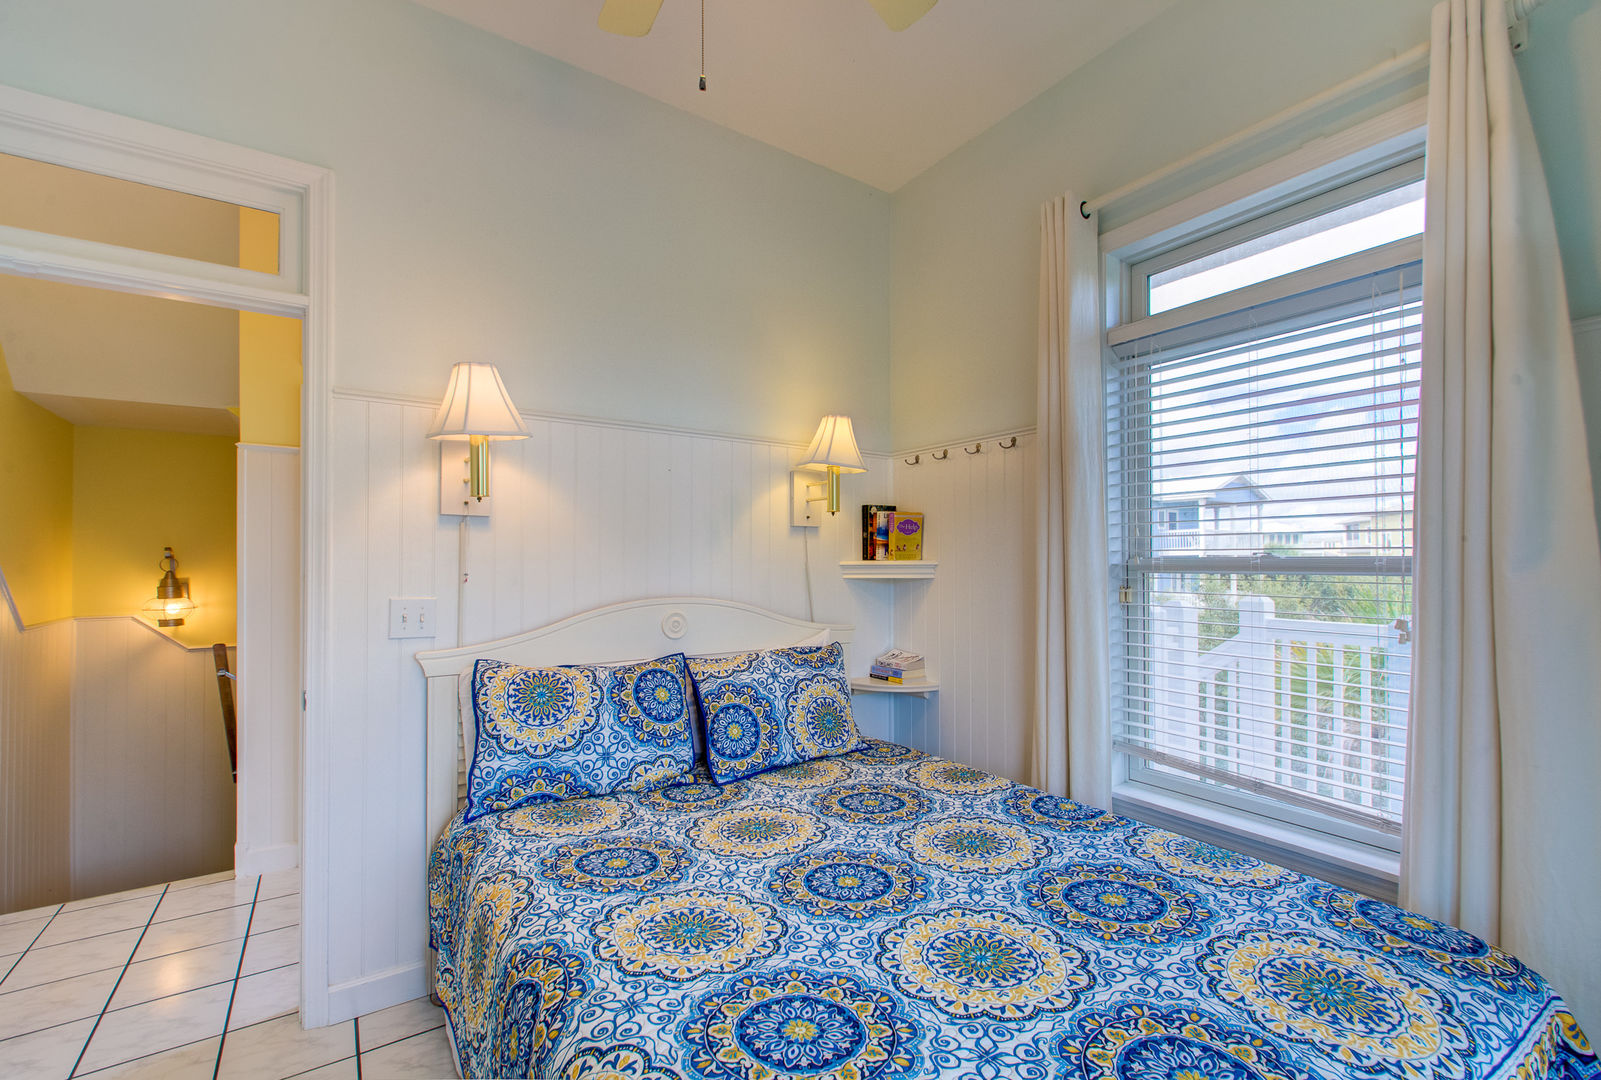 Bedroom Features Queen-Sized Bed and Large Window.